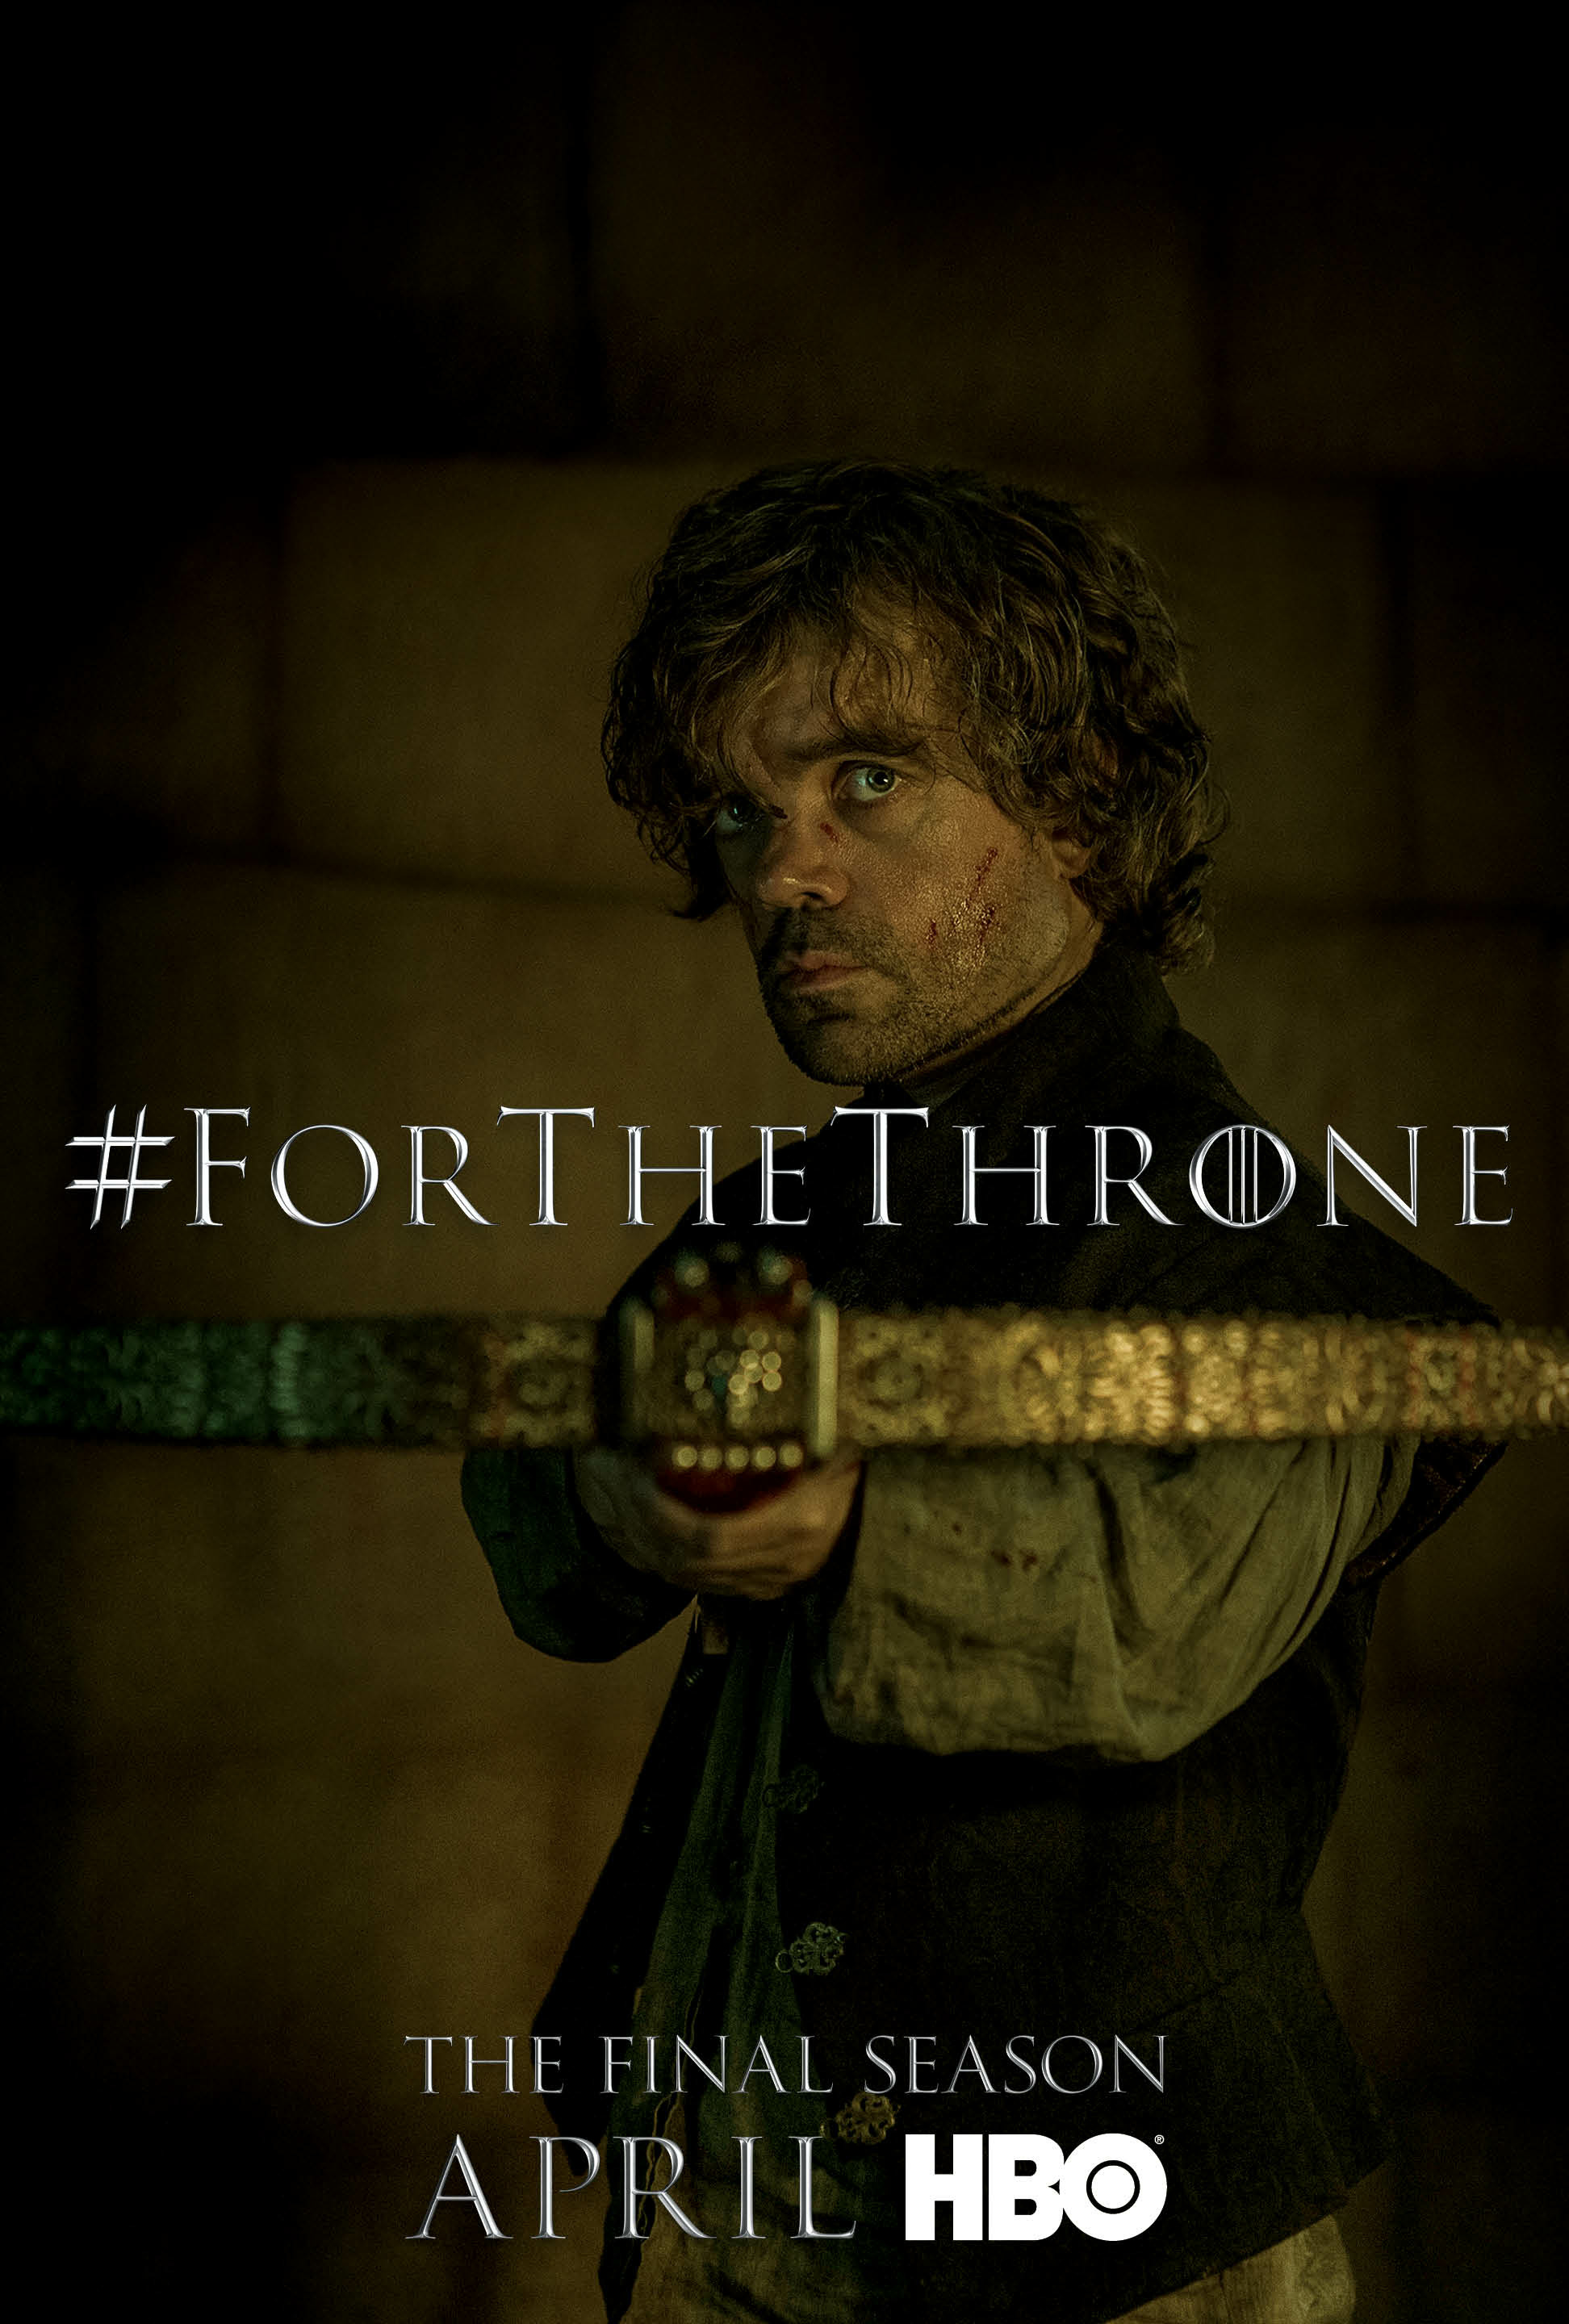 Game of Thrones - 'For the Throne' Poster - Tyrion Lannster